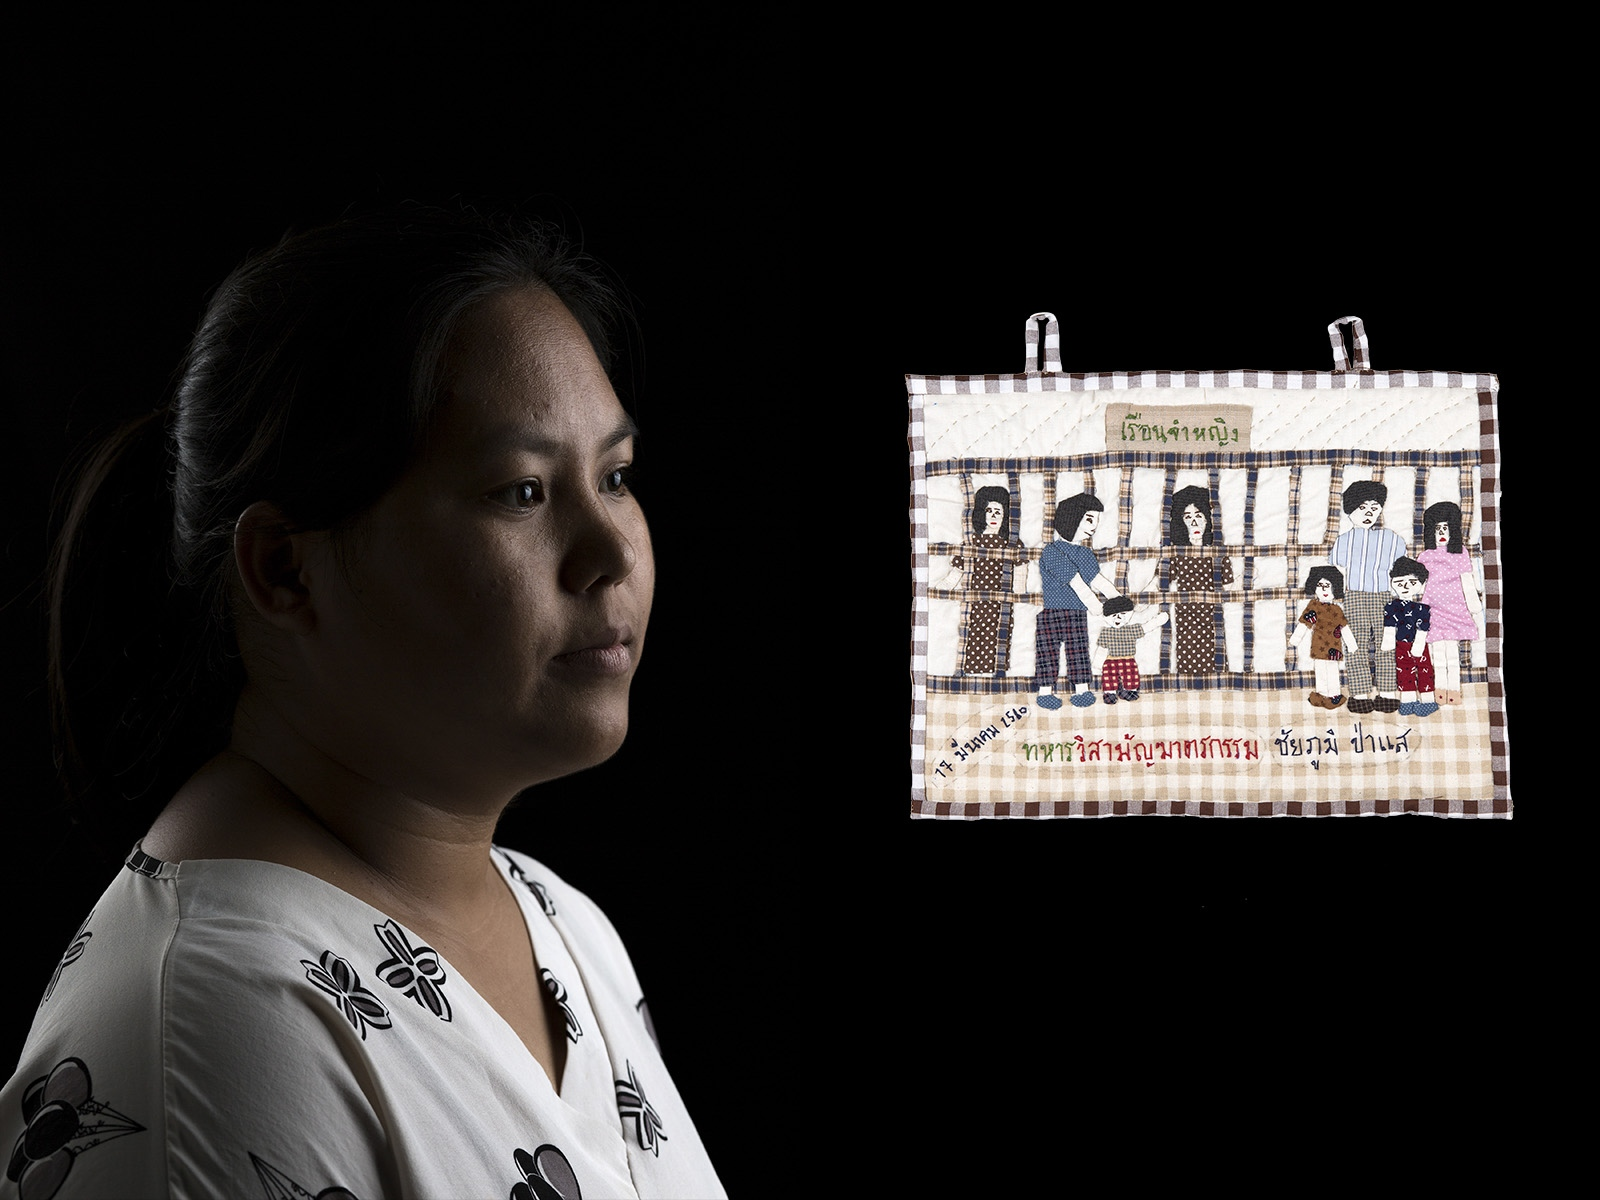 Yupin Saja is a member of the Save Lahu group and a family member of Chaiyaphum Pasae who was shot dead at an army checkpoint in the province of Chiang Mai. For the last few years she has been forced to live in a safe house with her family as her village is deemed to dangerous for them to  return to.